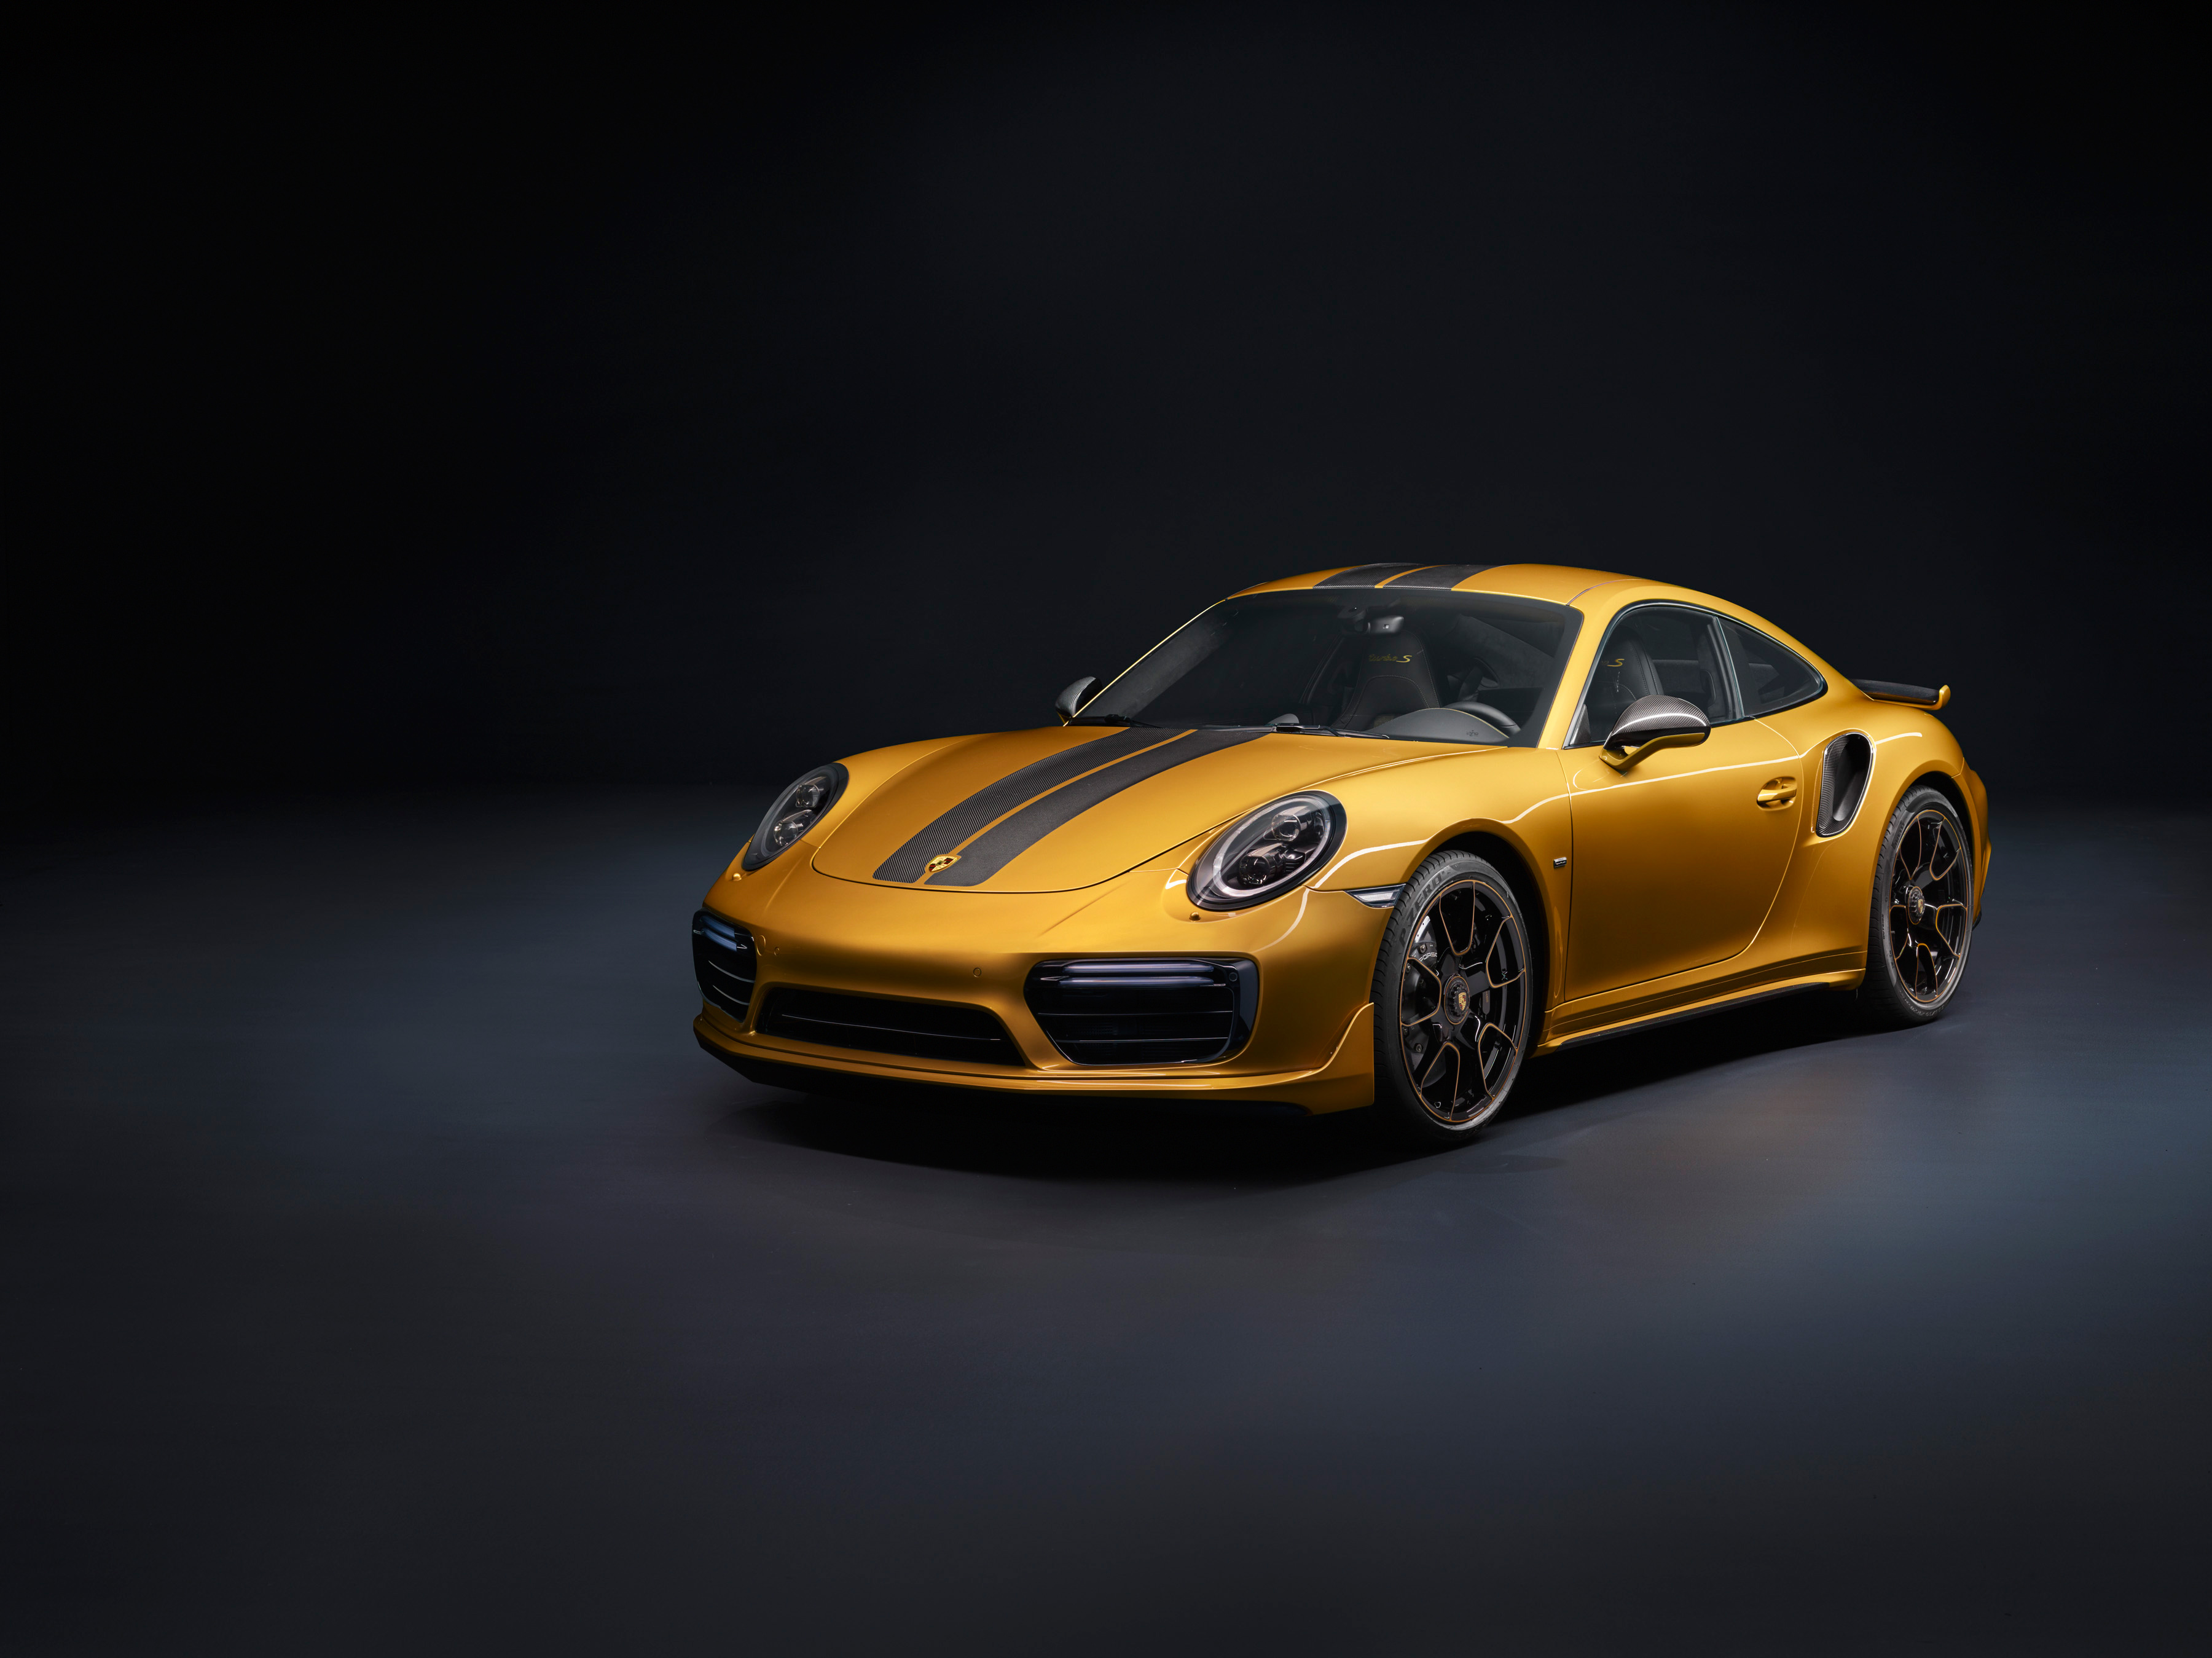 Turbo S Exclusive Series: The New Über 911